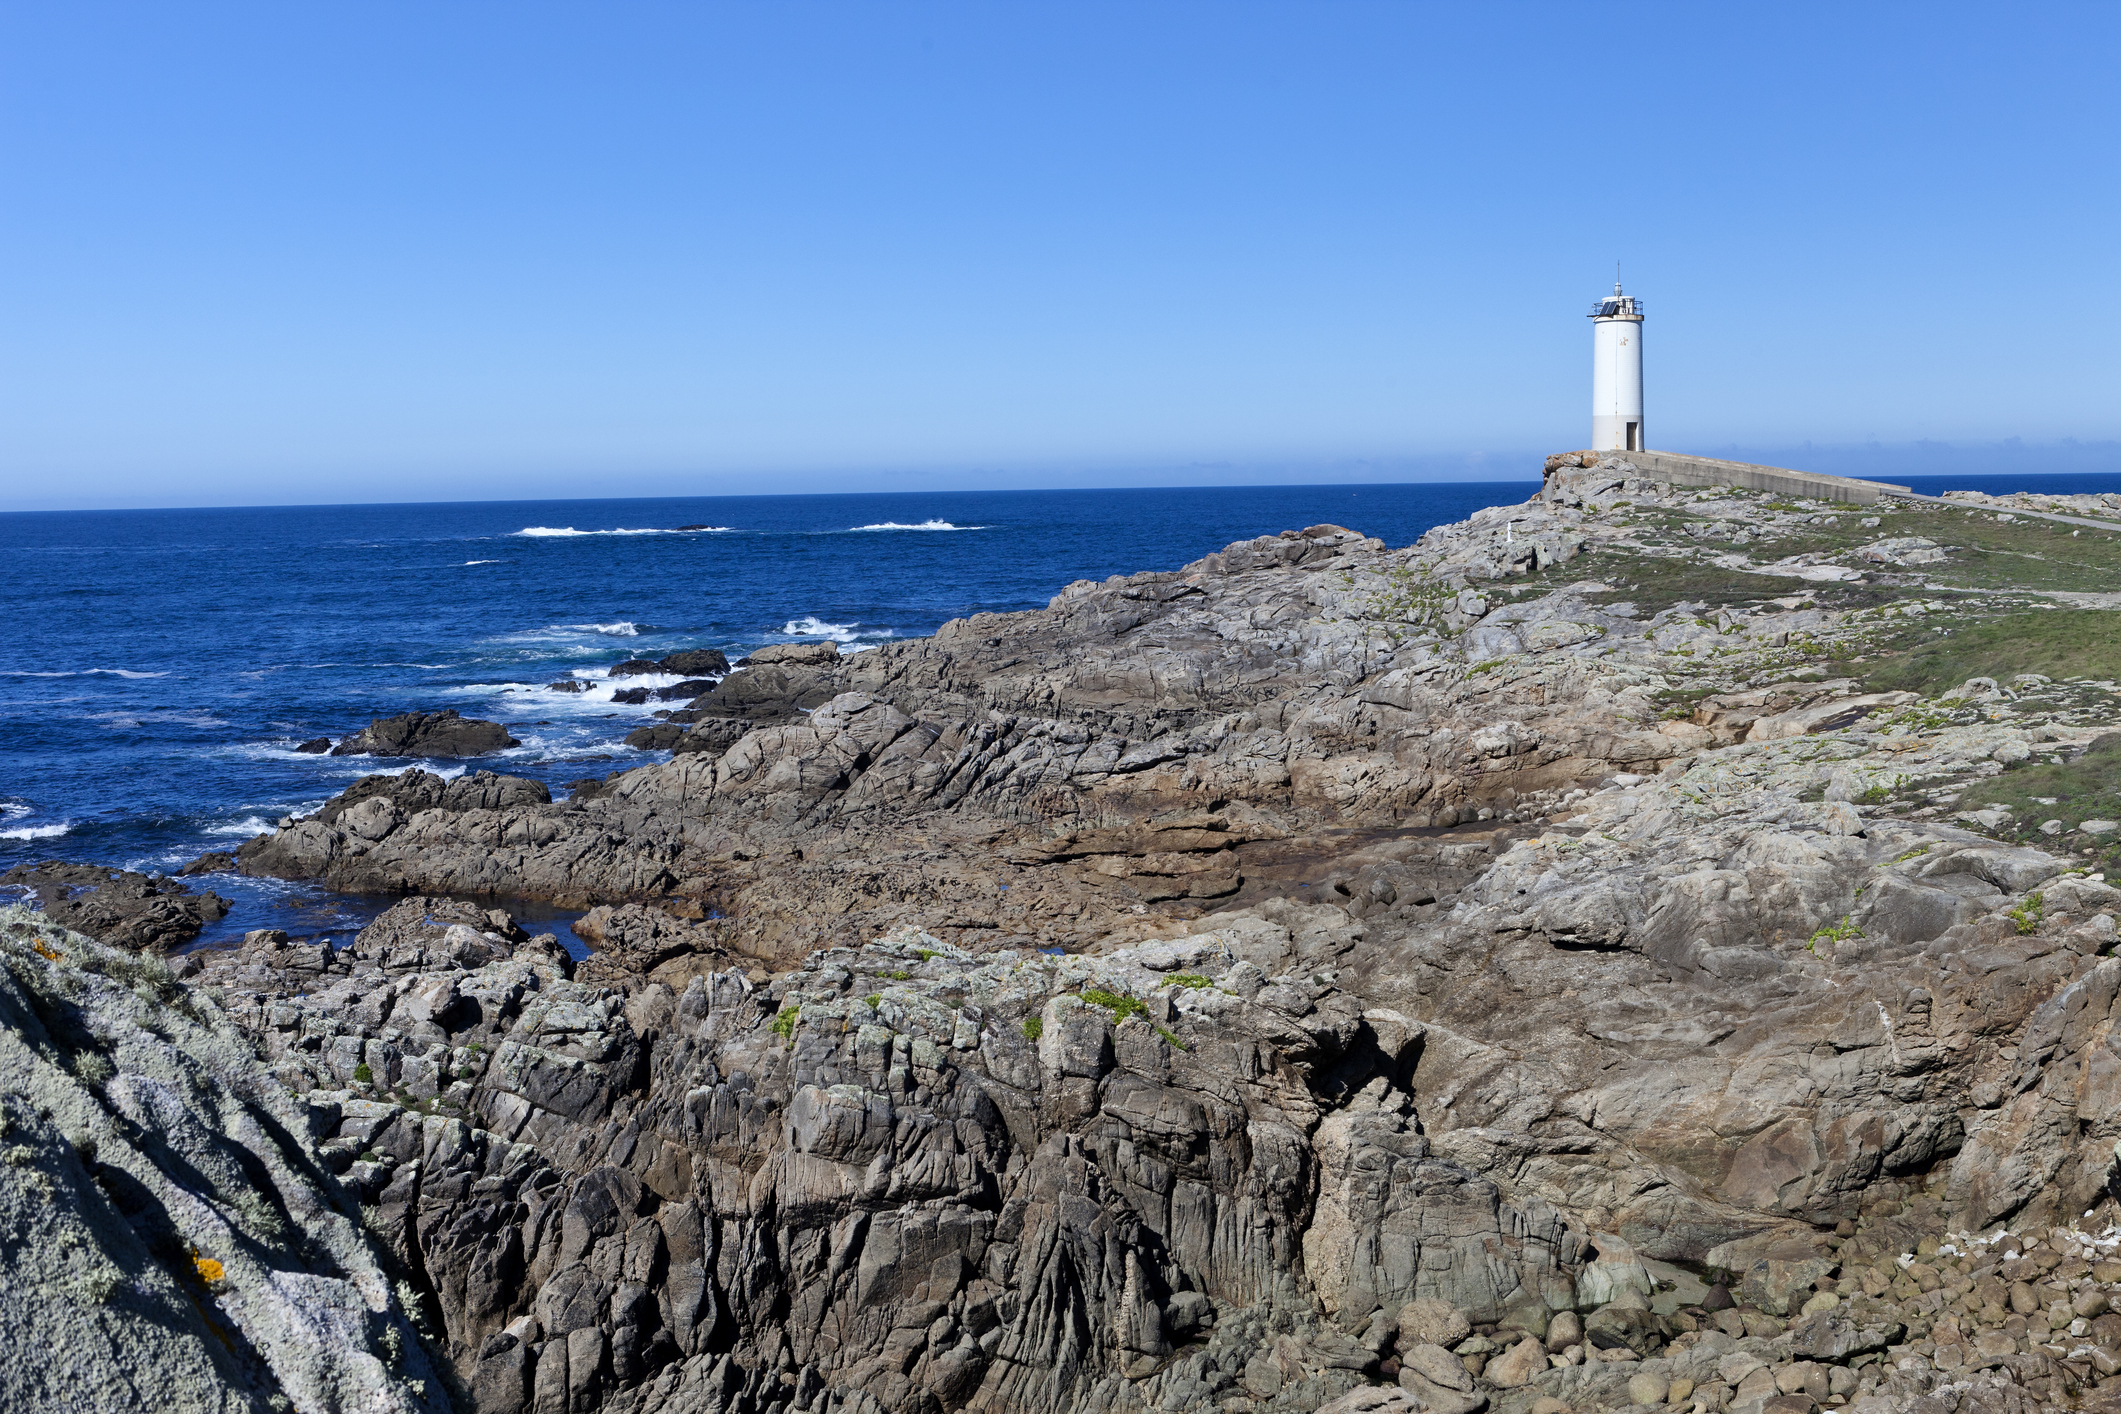 Roncudo lighthouse and white memorial cross in memory of those who died in the Atlantic ocean waters stands near Corme, Costa da Morte (Coast of Death), at A Coruna province (Spain).